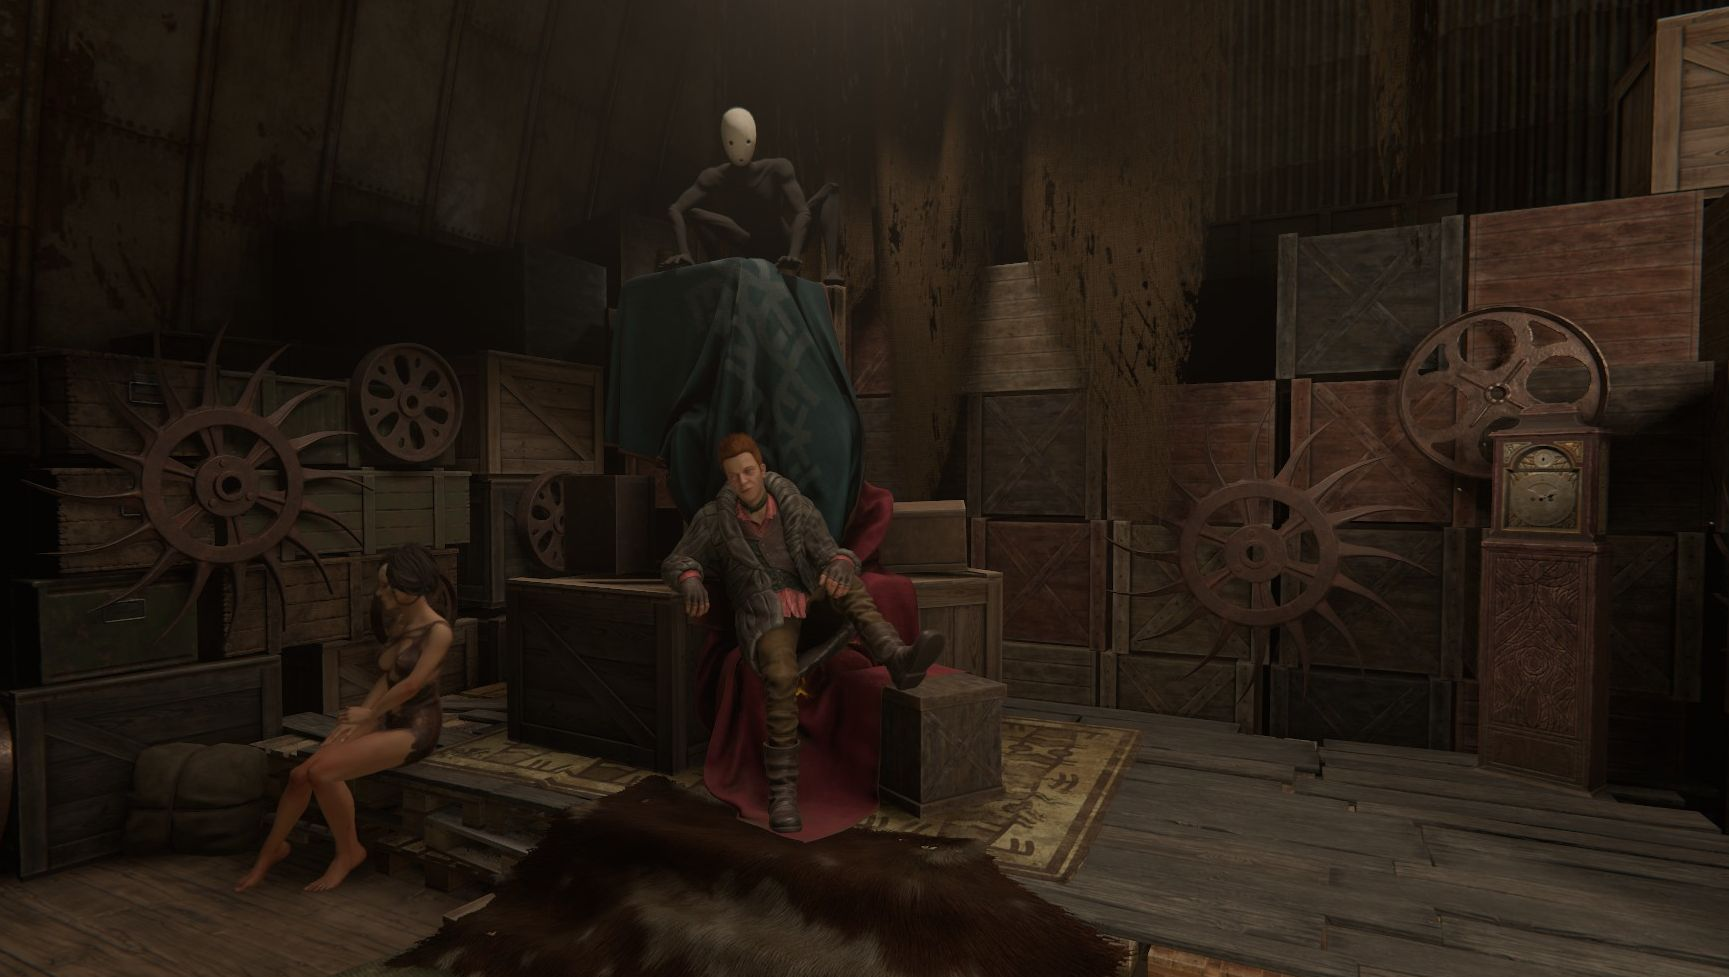 The inside of a warehouse in Pathologic 2, with stacked wooden crates. Three people (two relatively normal looking and one a terrifying spectre in a white mask of some kind) are sitting on some of these crates.